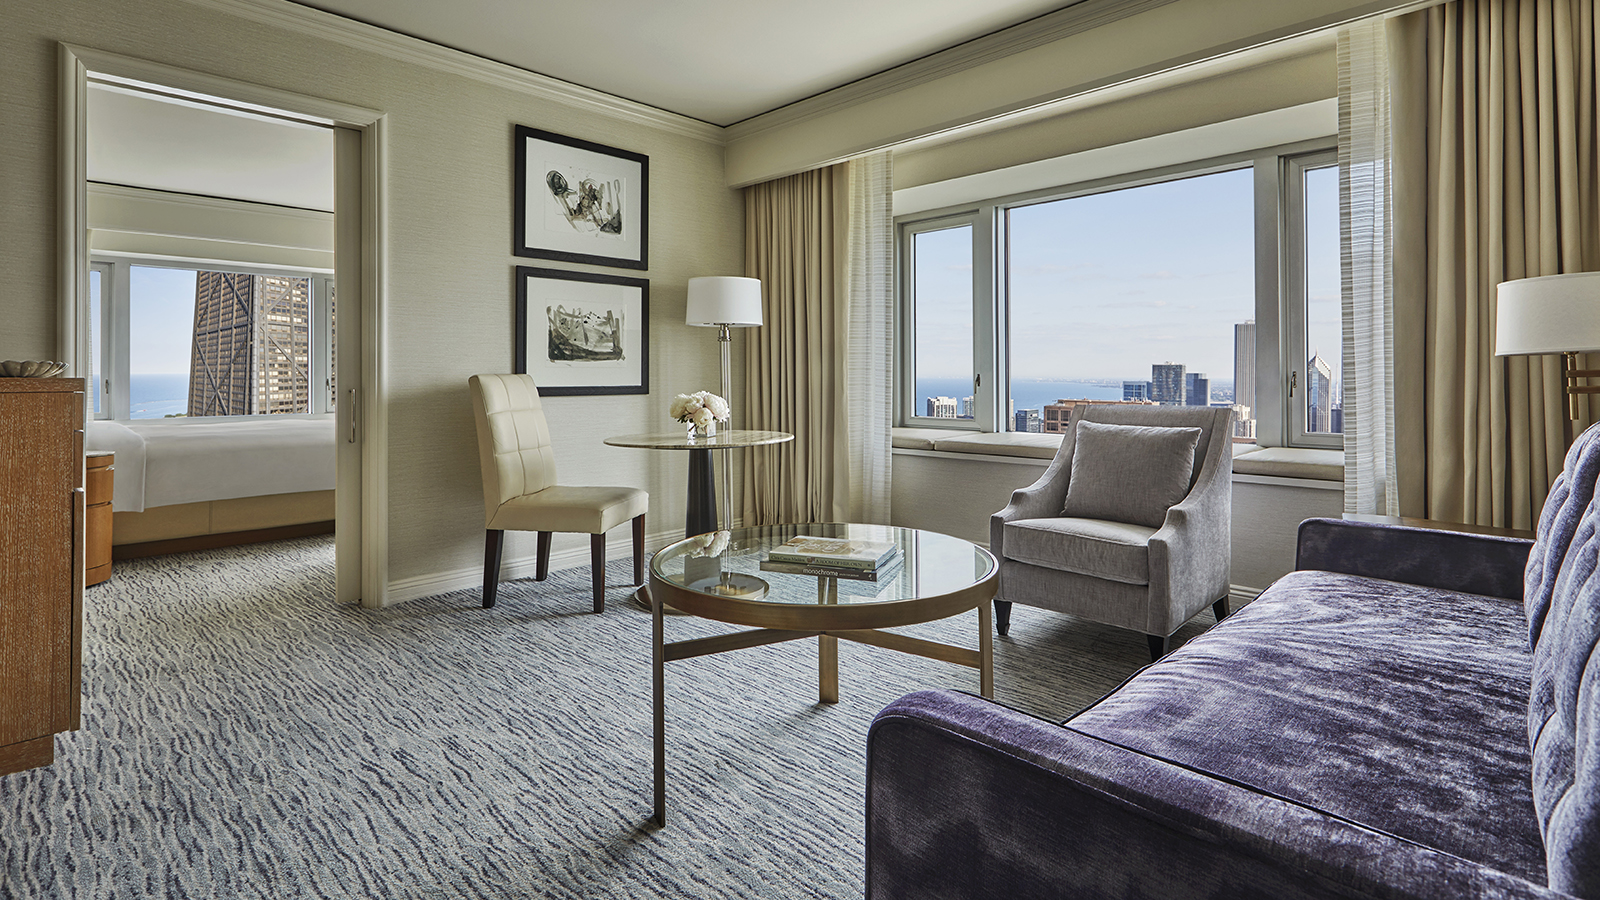 Third Night Free Our Stay Longer Package Gives You More Time To Enjoy The Hotel S Luxurious Accommodationagnificent Views As Well Chicago